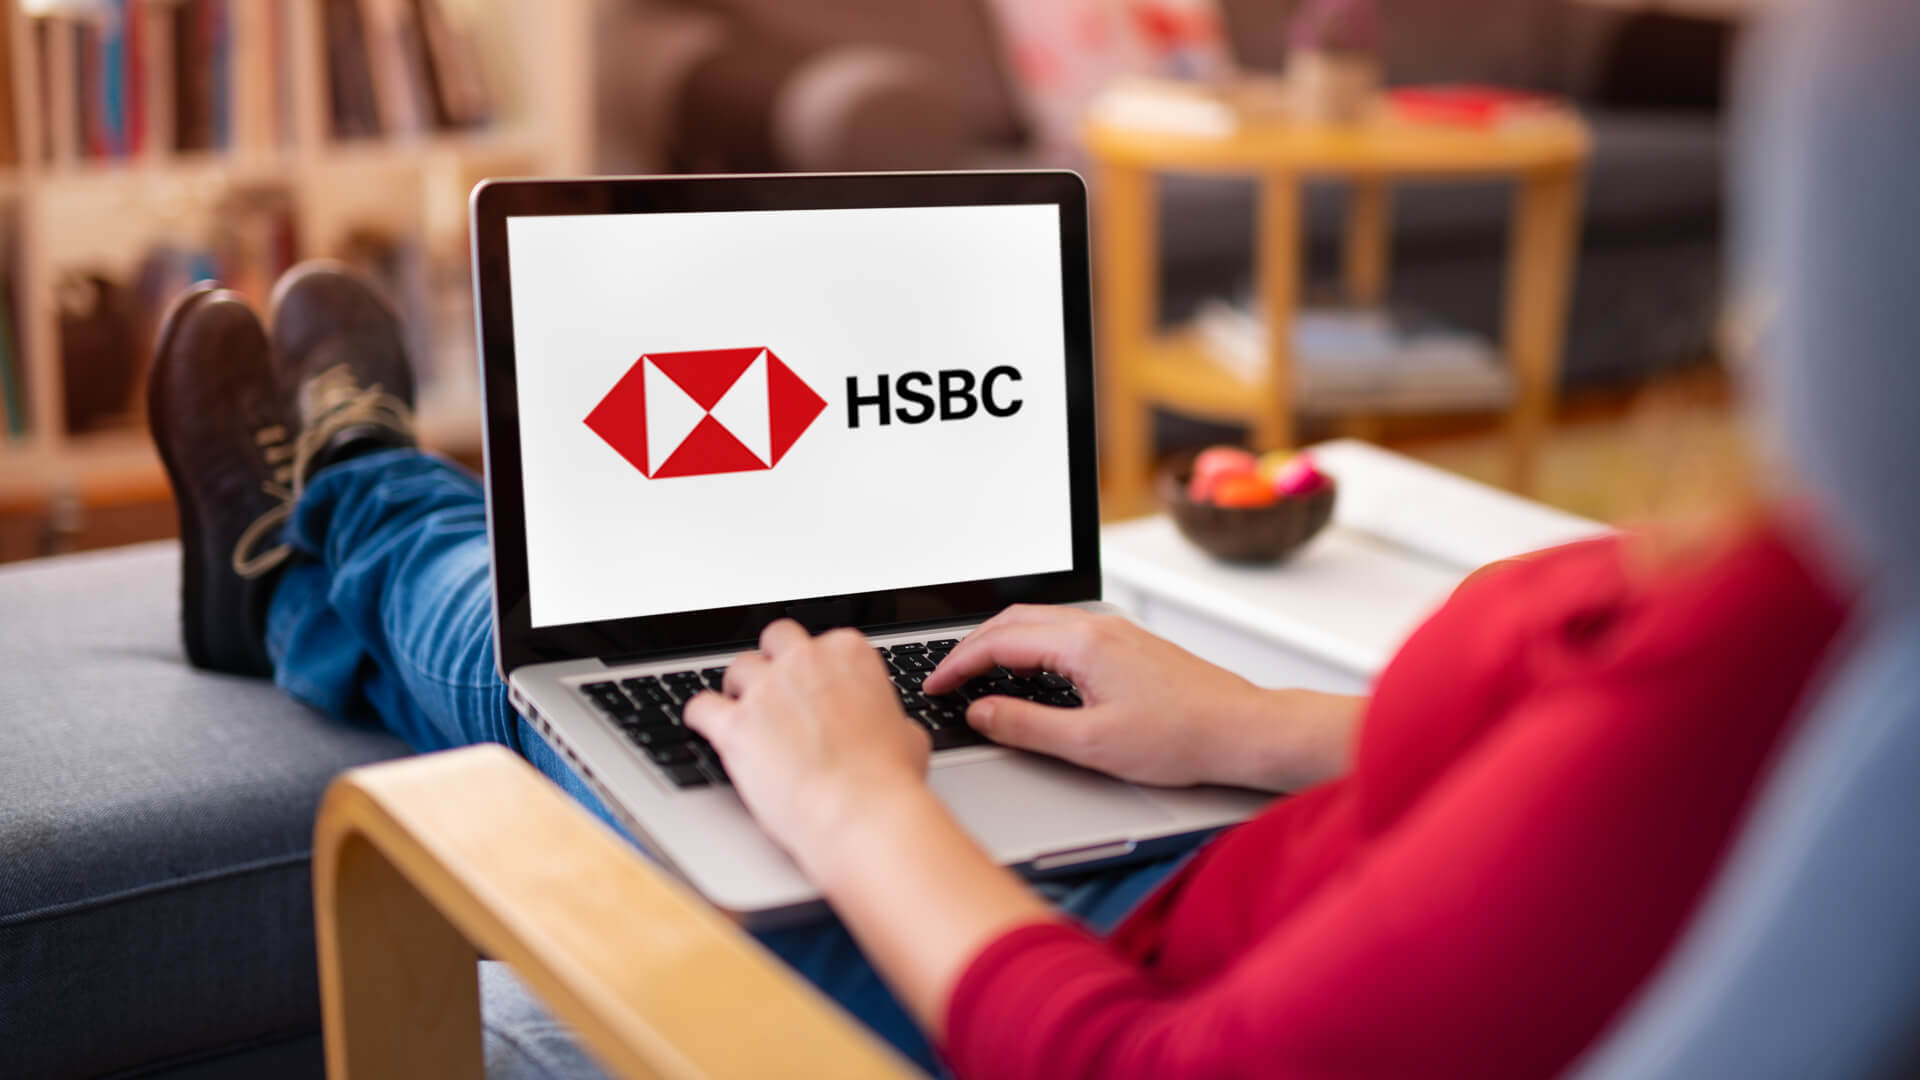 How To Find and Use Your HSBC Login